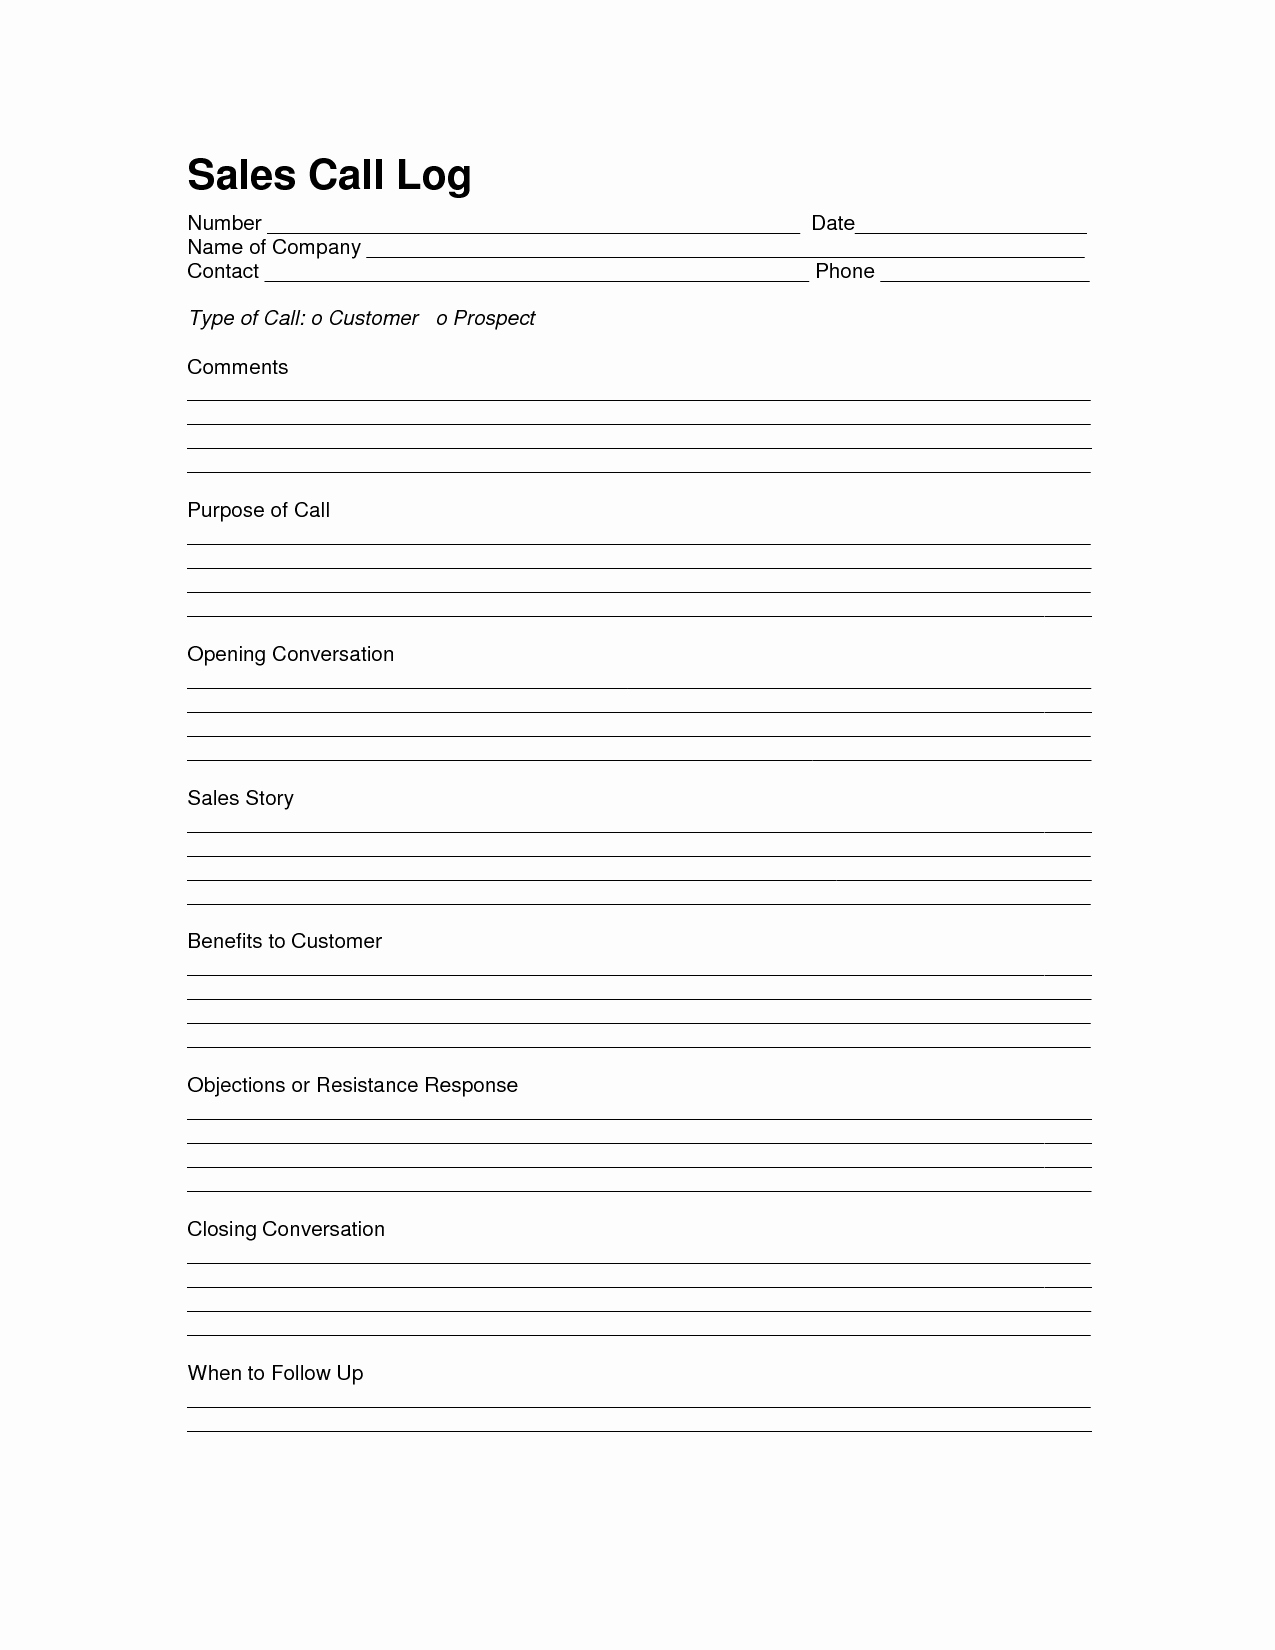 Free Call Sheet Template Best Of Sales Log Sheet Template Sales Call Log Template